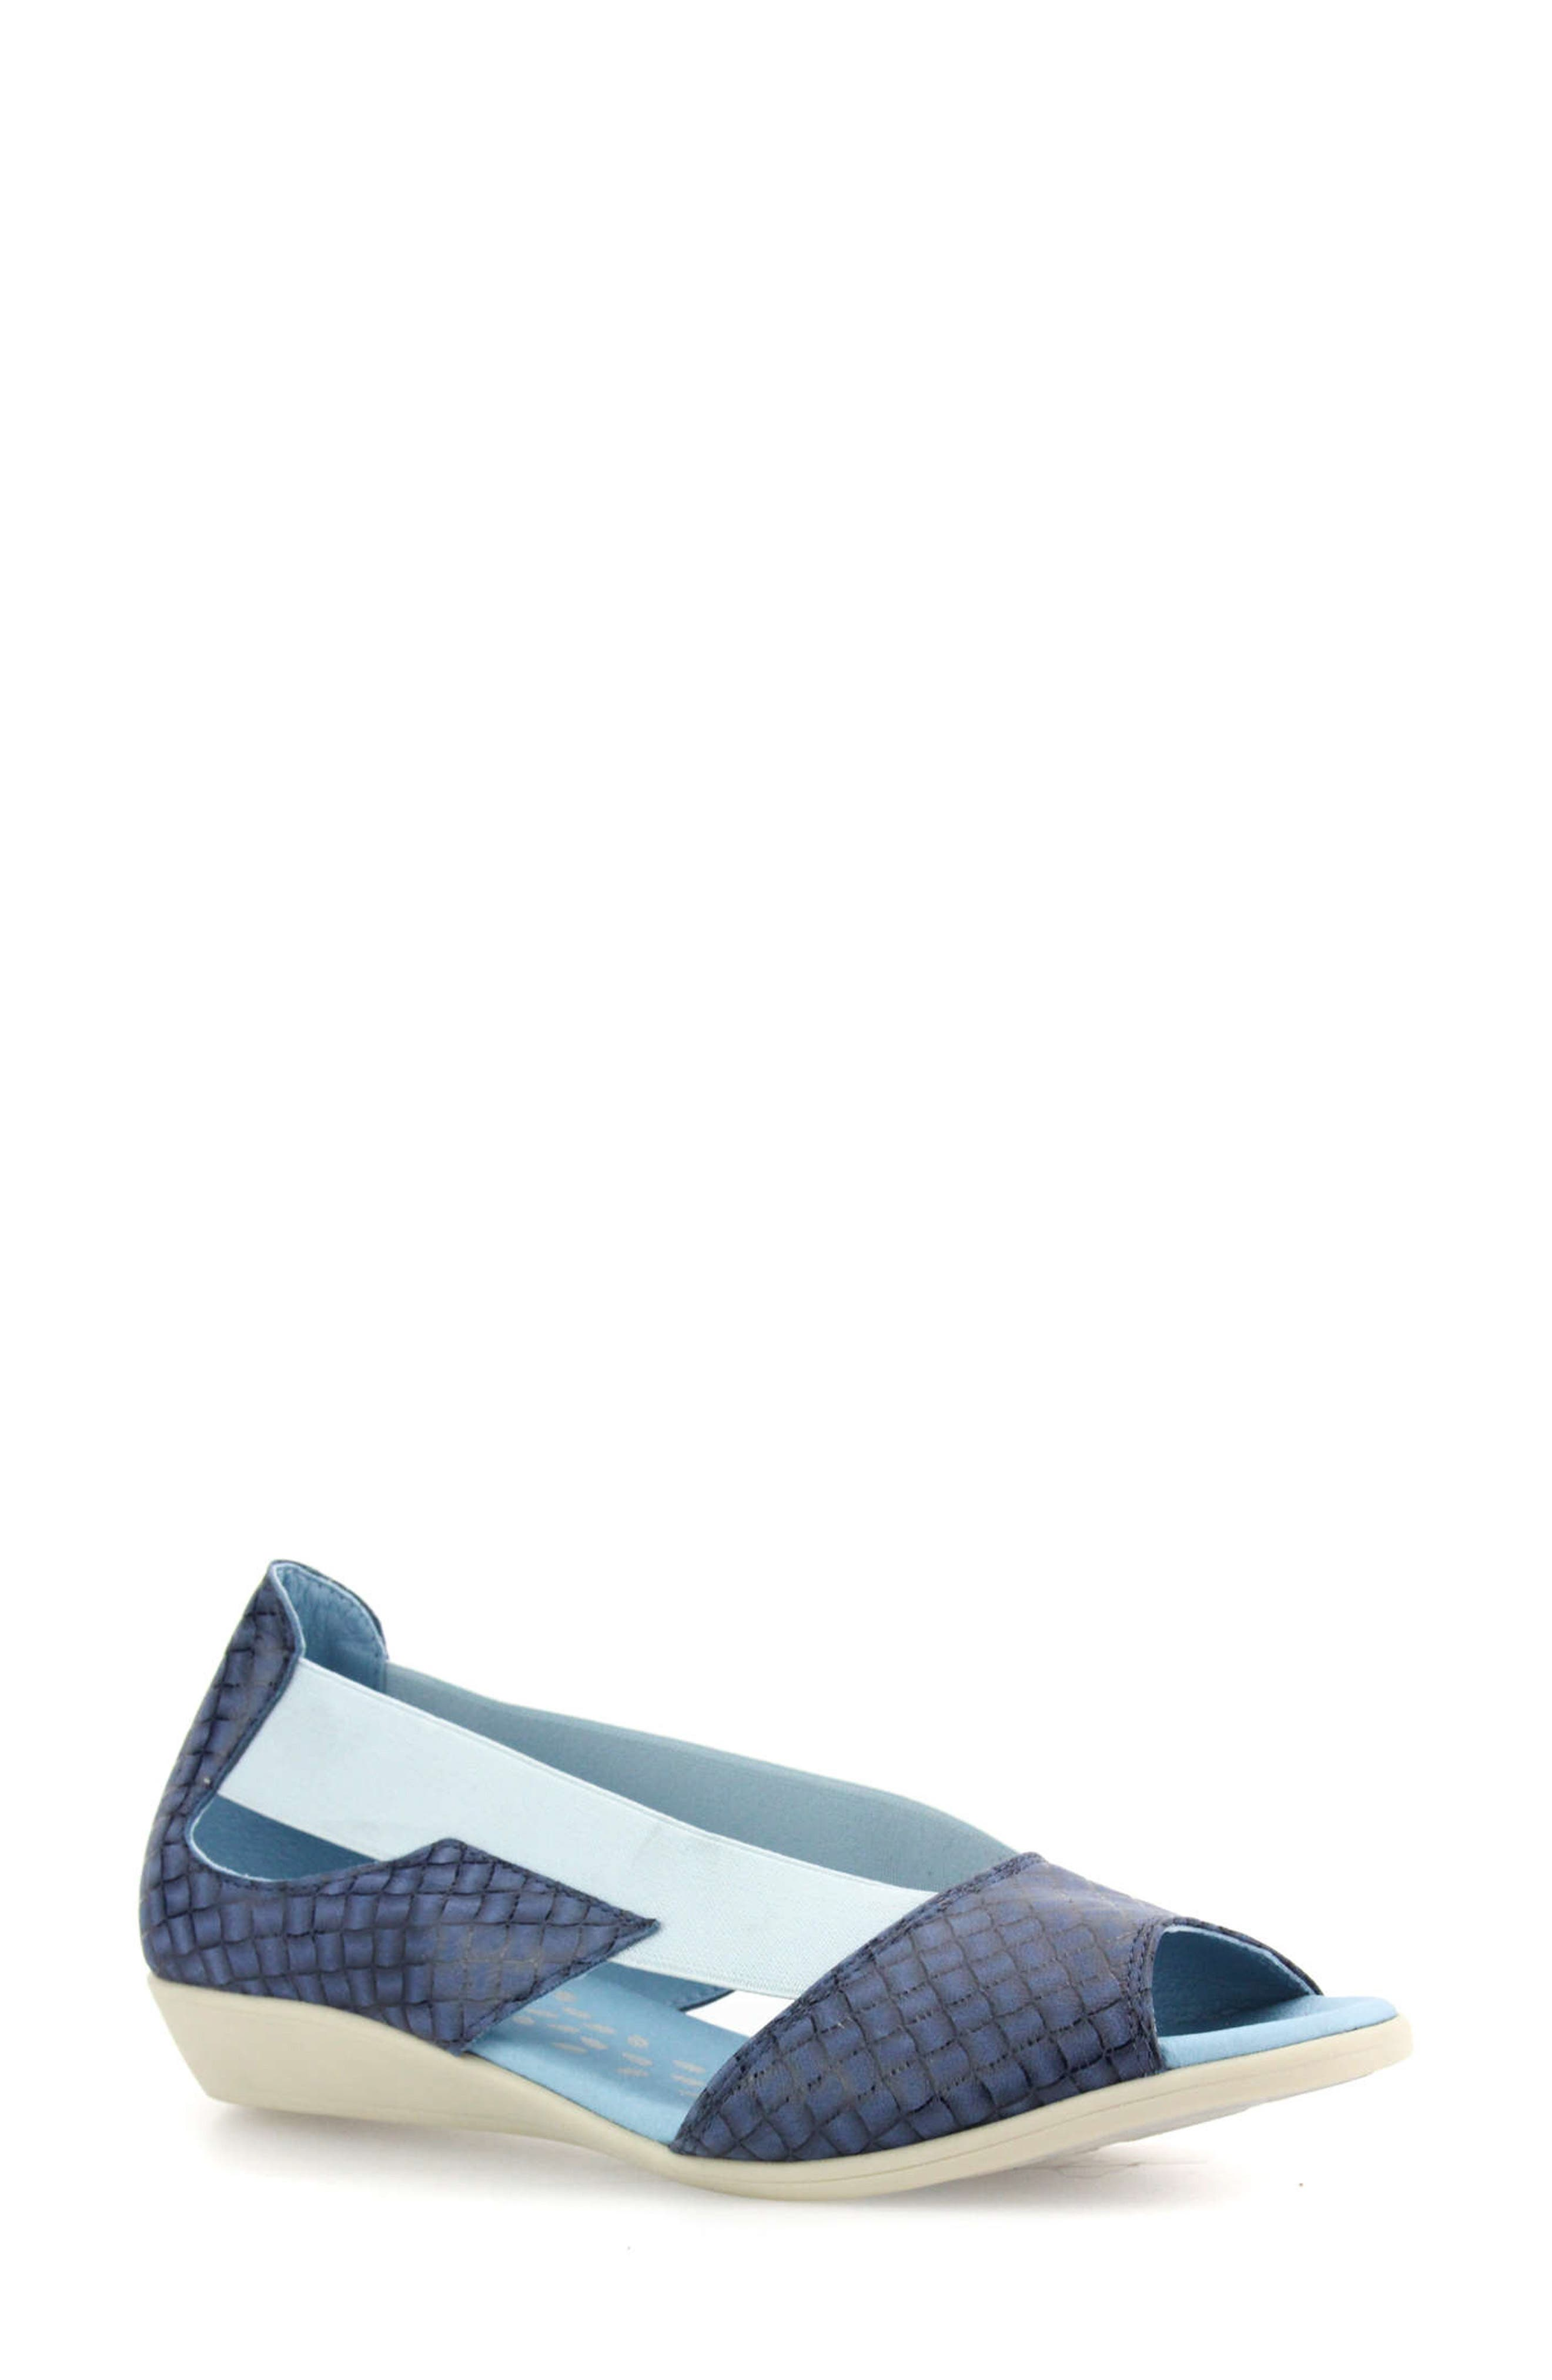 A breathable footbed and flexible sole enhance the everyday comfort of this versatile and stylish sandal. Style Name: Cloud Cacey Wedge Sandal (Women). Style Number: 6073168. Available in stores.